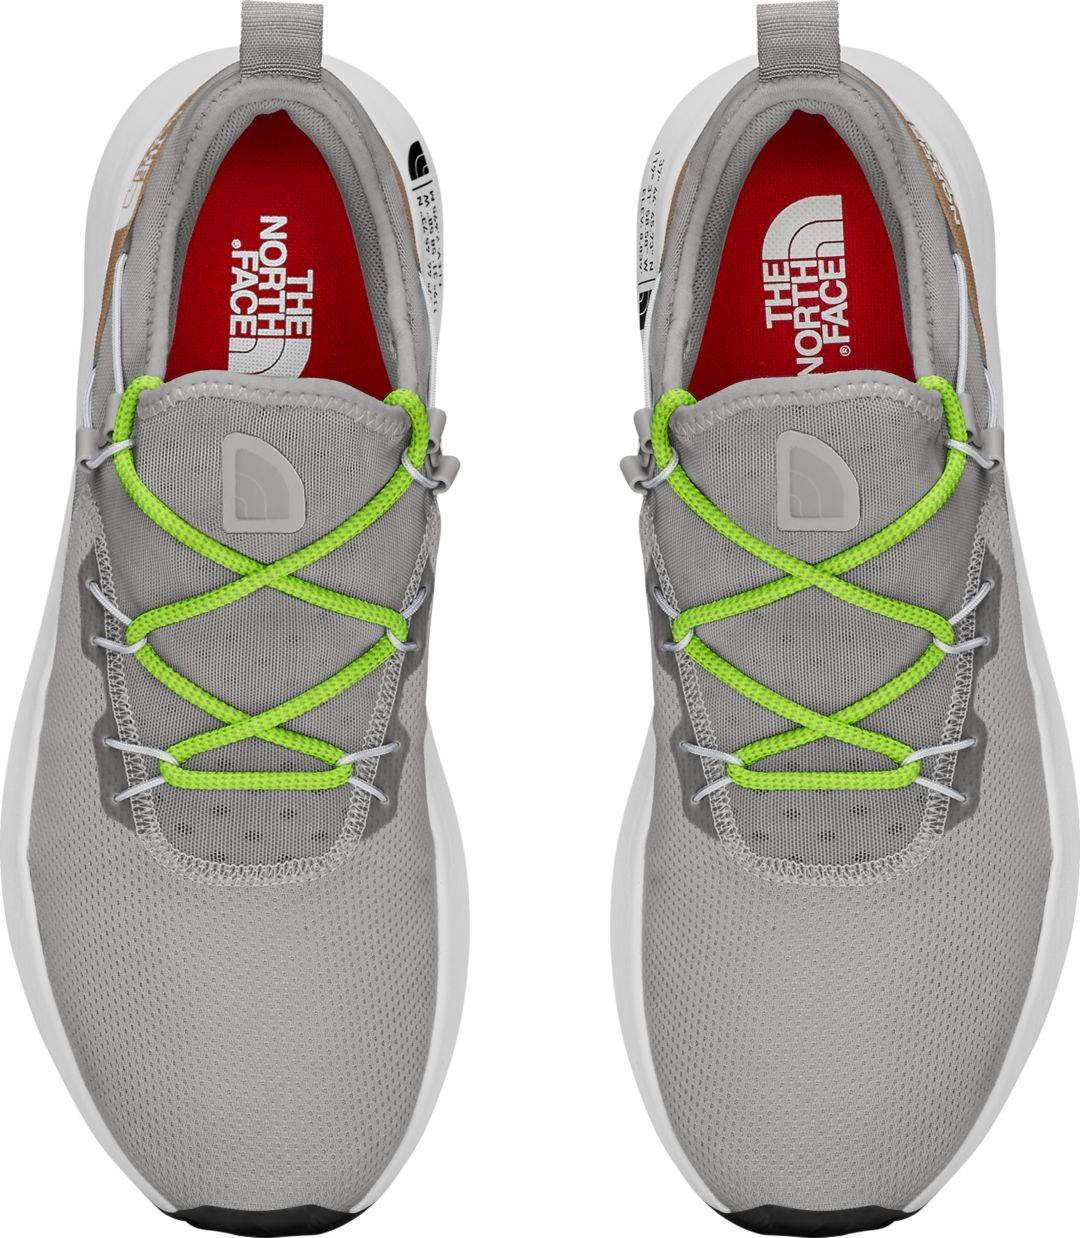 109f59b77 The North Face Men's Surge Highgate Running Shoes